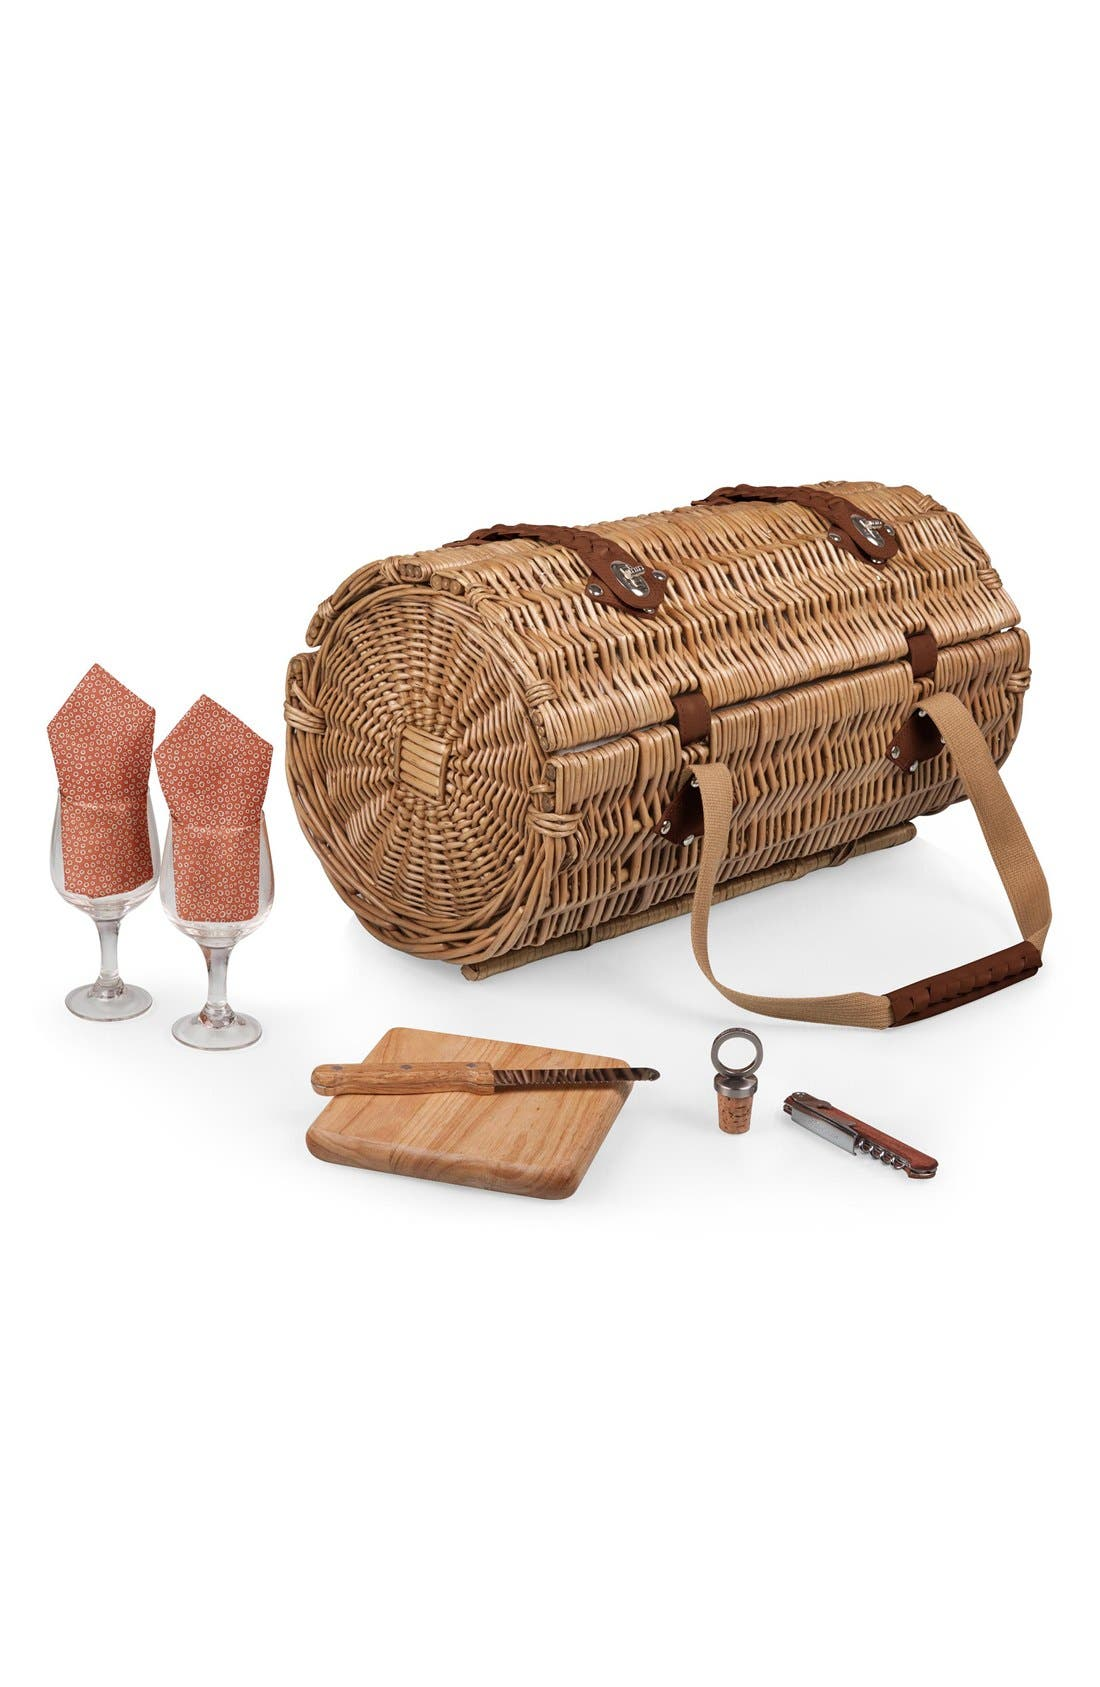 'Verona' Wicker Picnic Basket,                             Alternate thumbnail 2, color,                             400